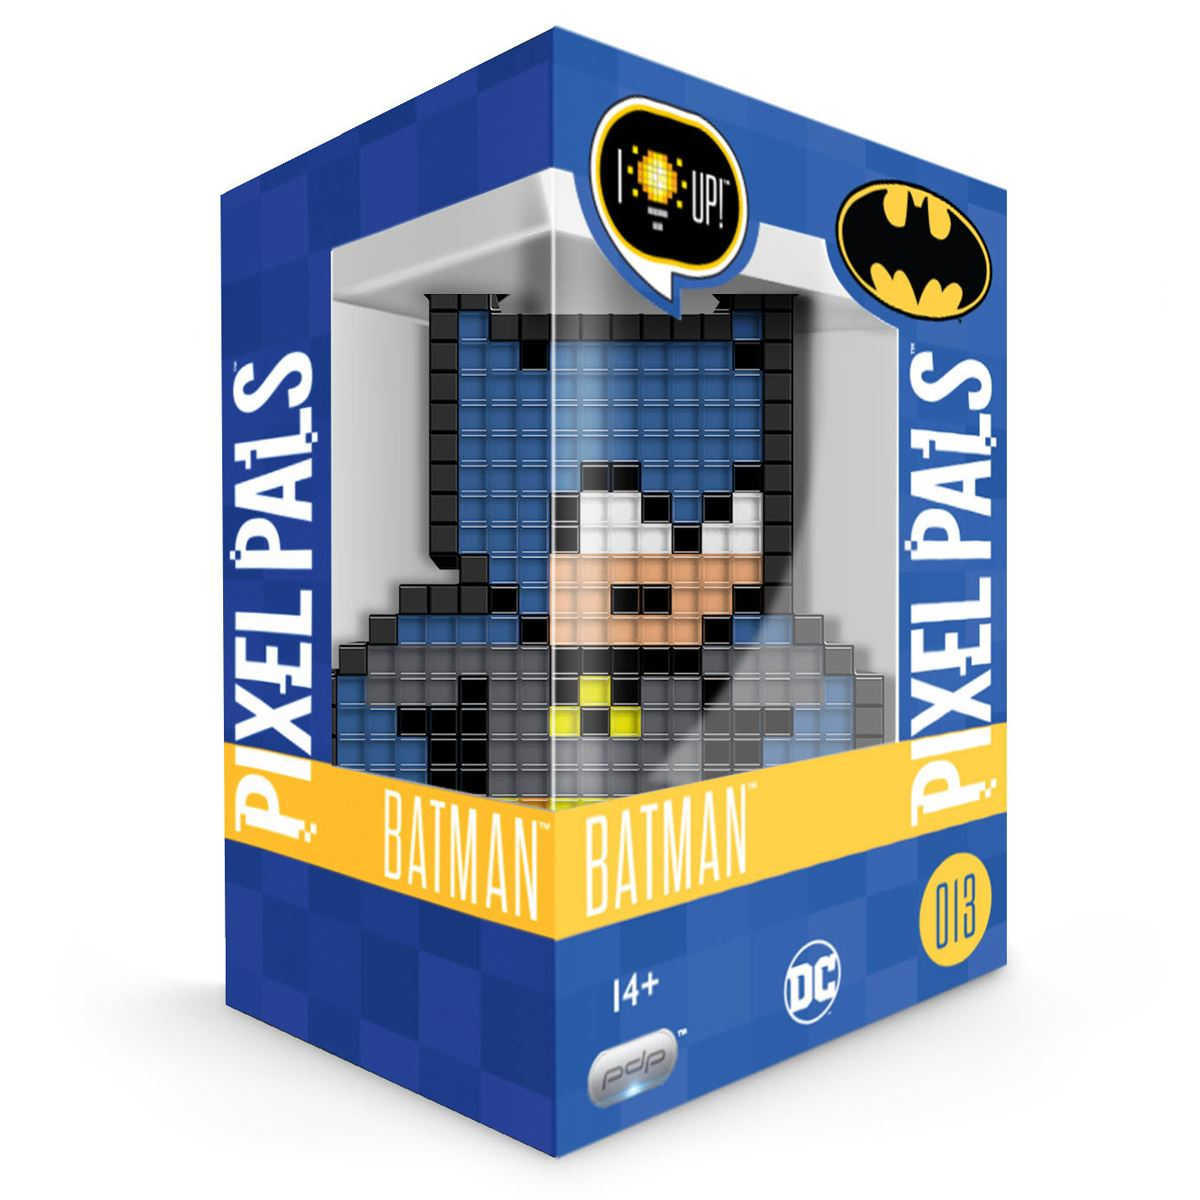 Pixel pals batman  - Sanborns